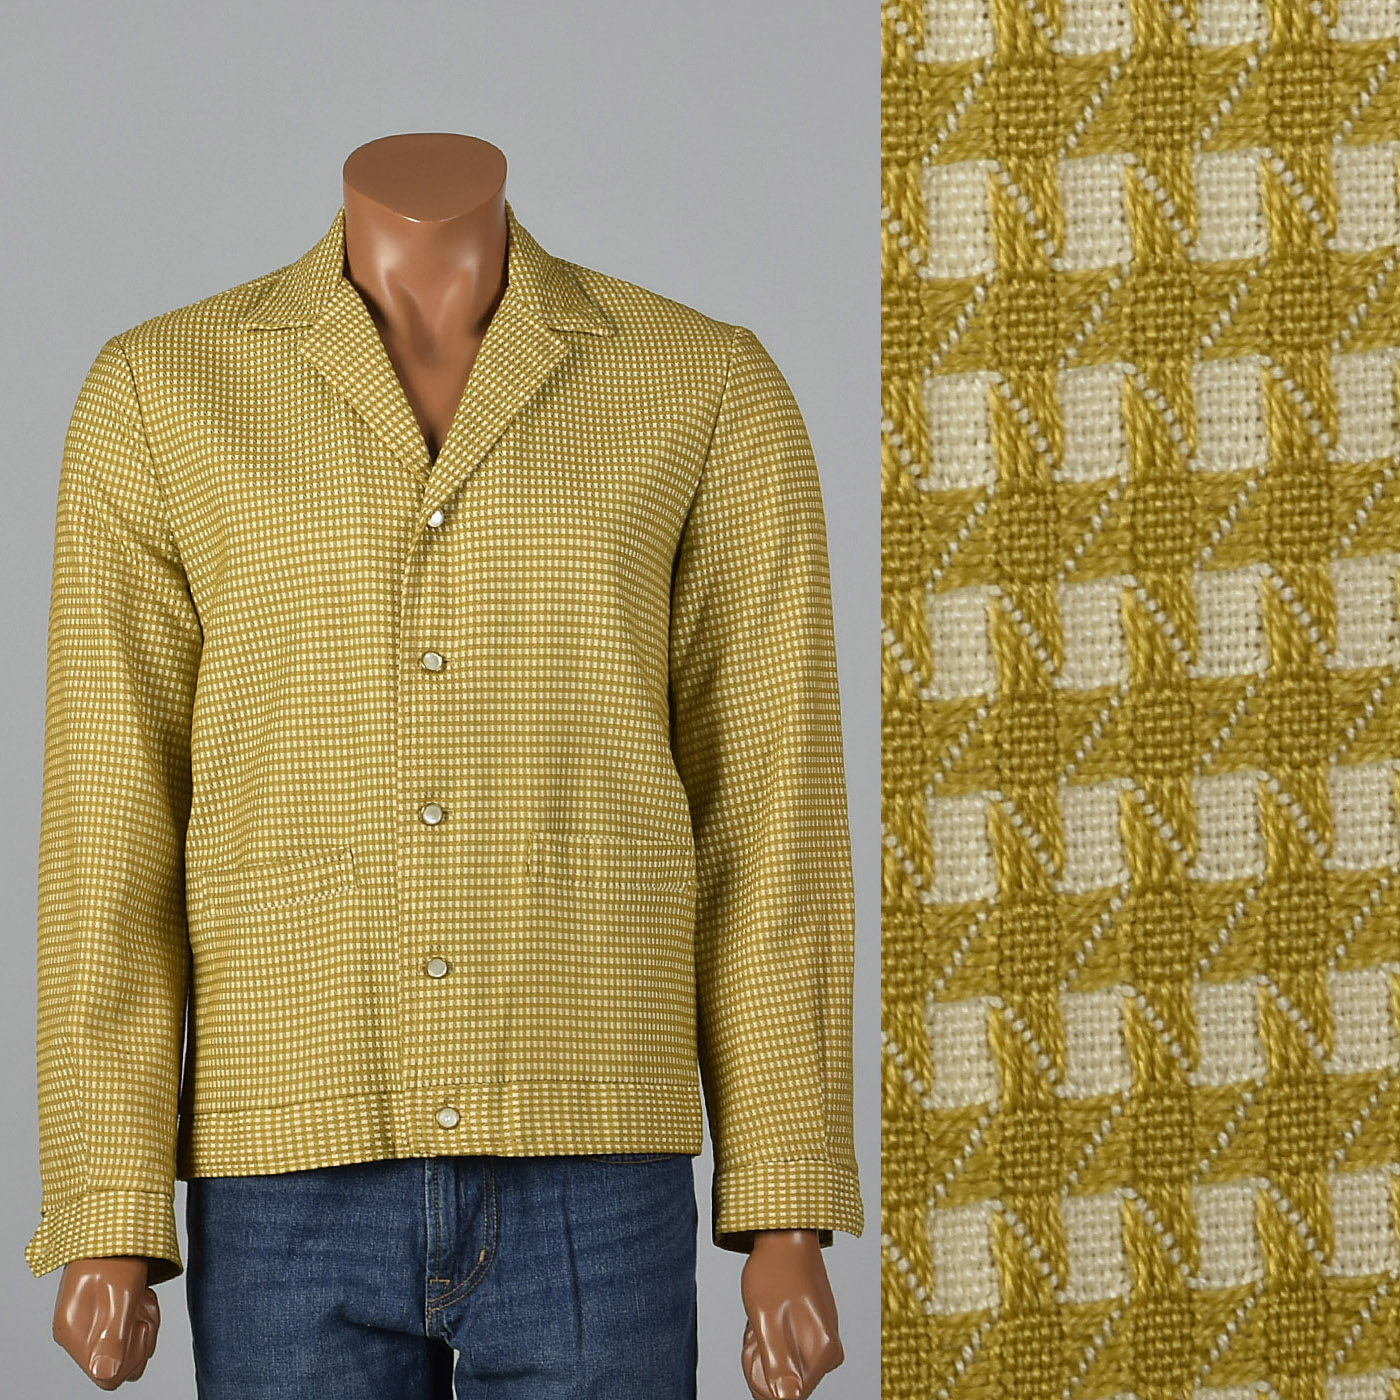 M 1950s Mens Textured Check Jacket Gold Cream Casual Leisure